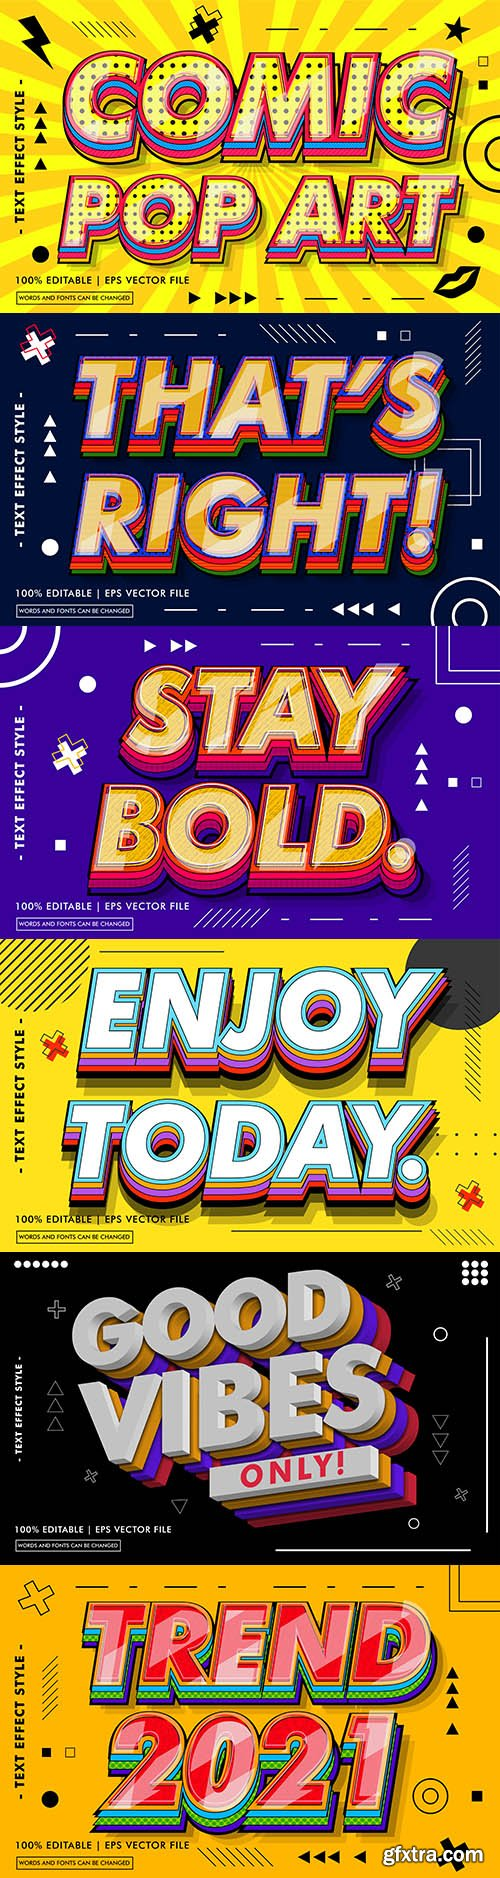 Editable font and 3d effect text design collection illustration 3